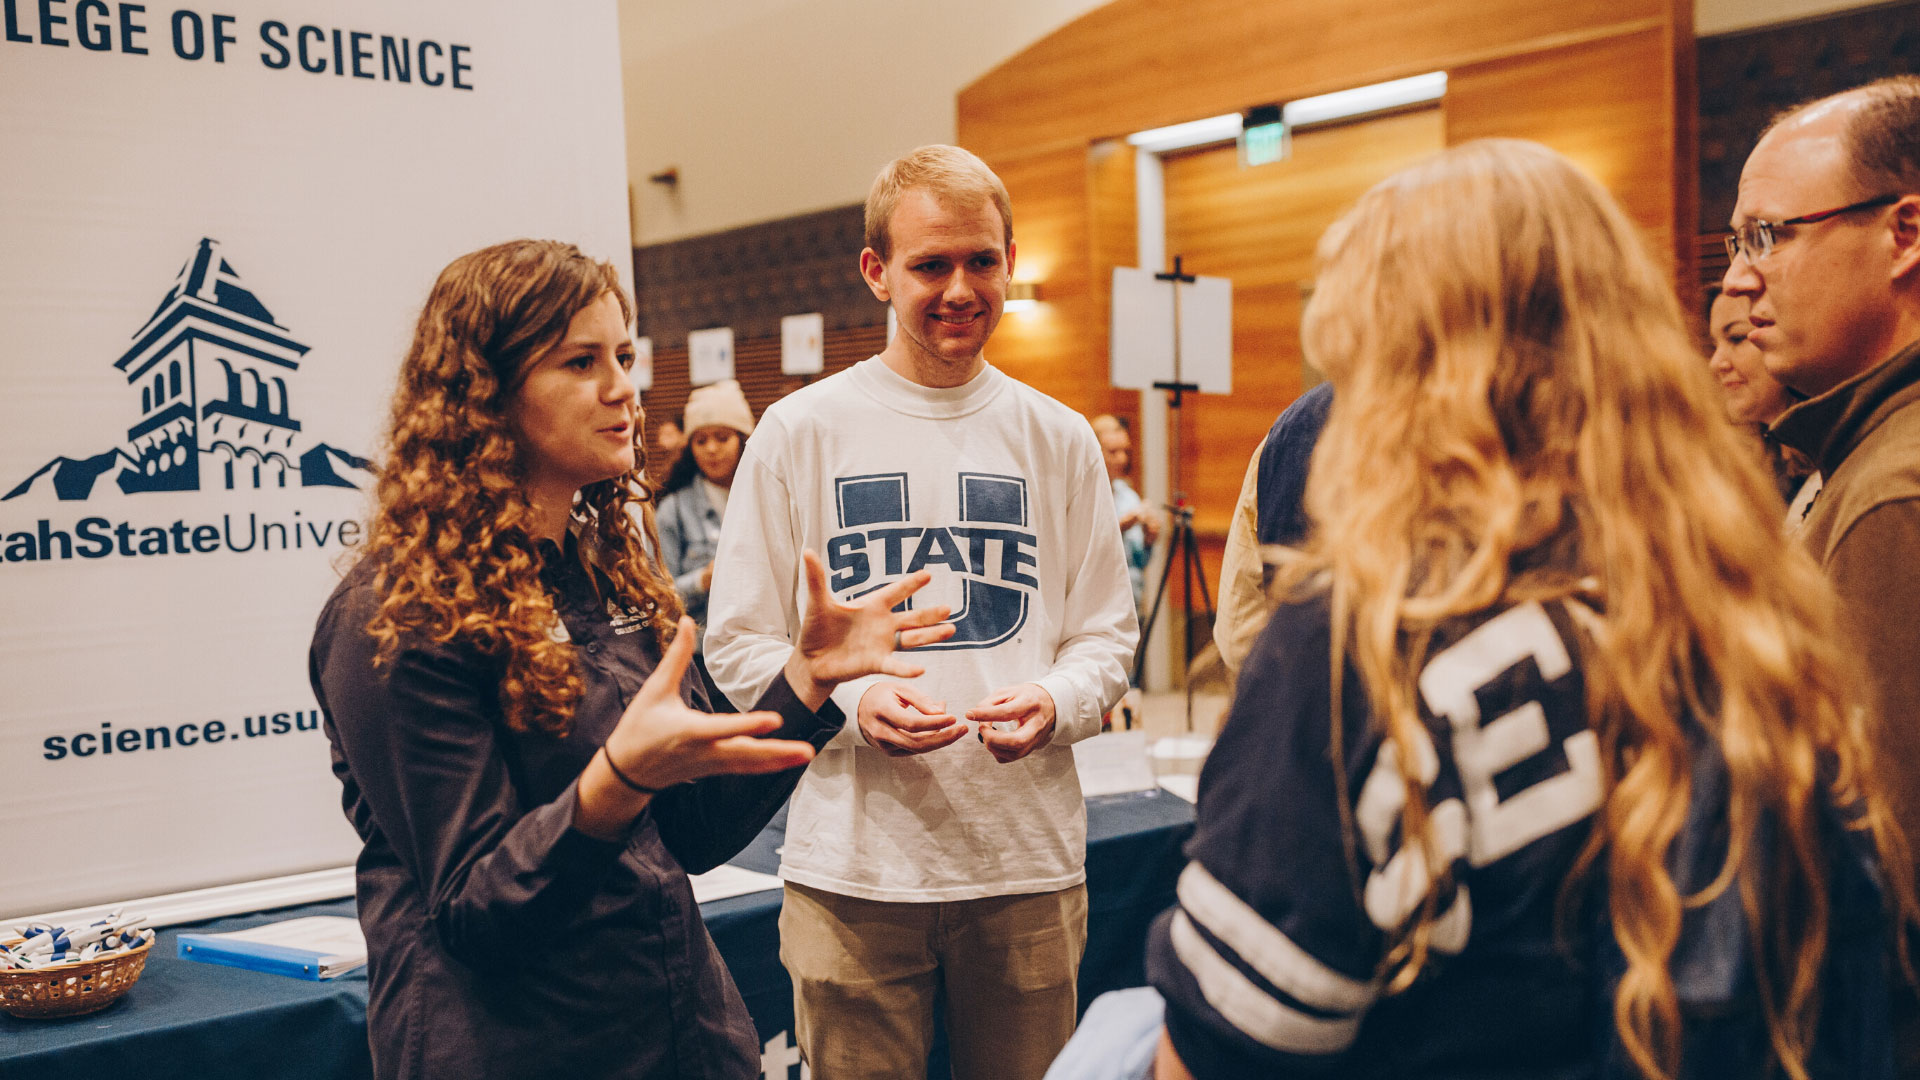 USU Admissions Wraps Up Utah's Largest Open Houses with 2,771 in Total Attendance